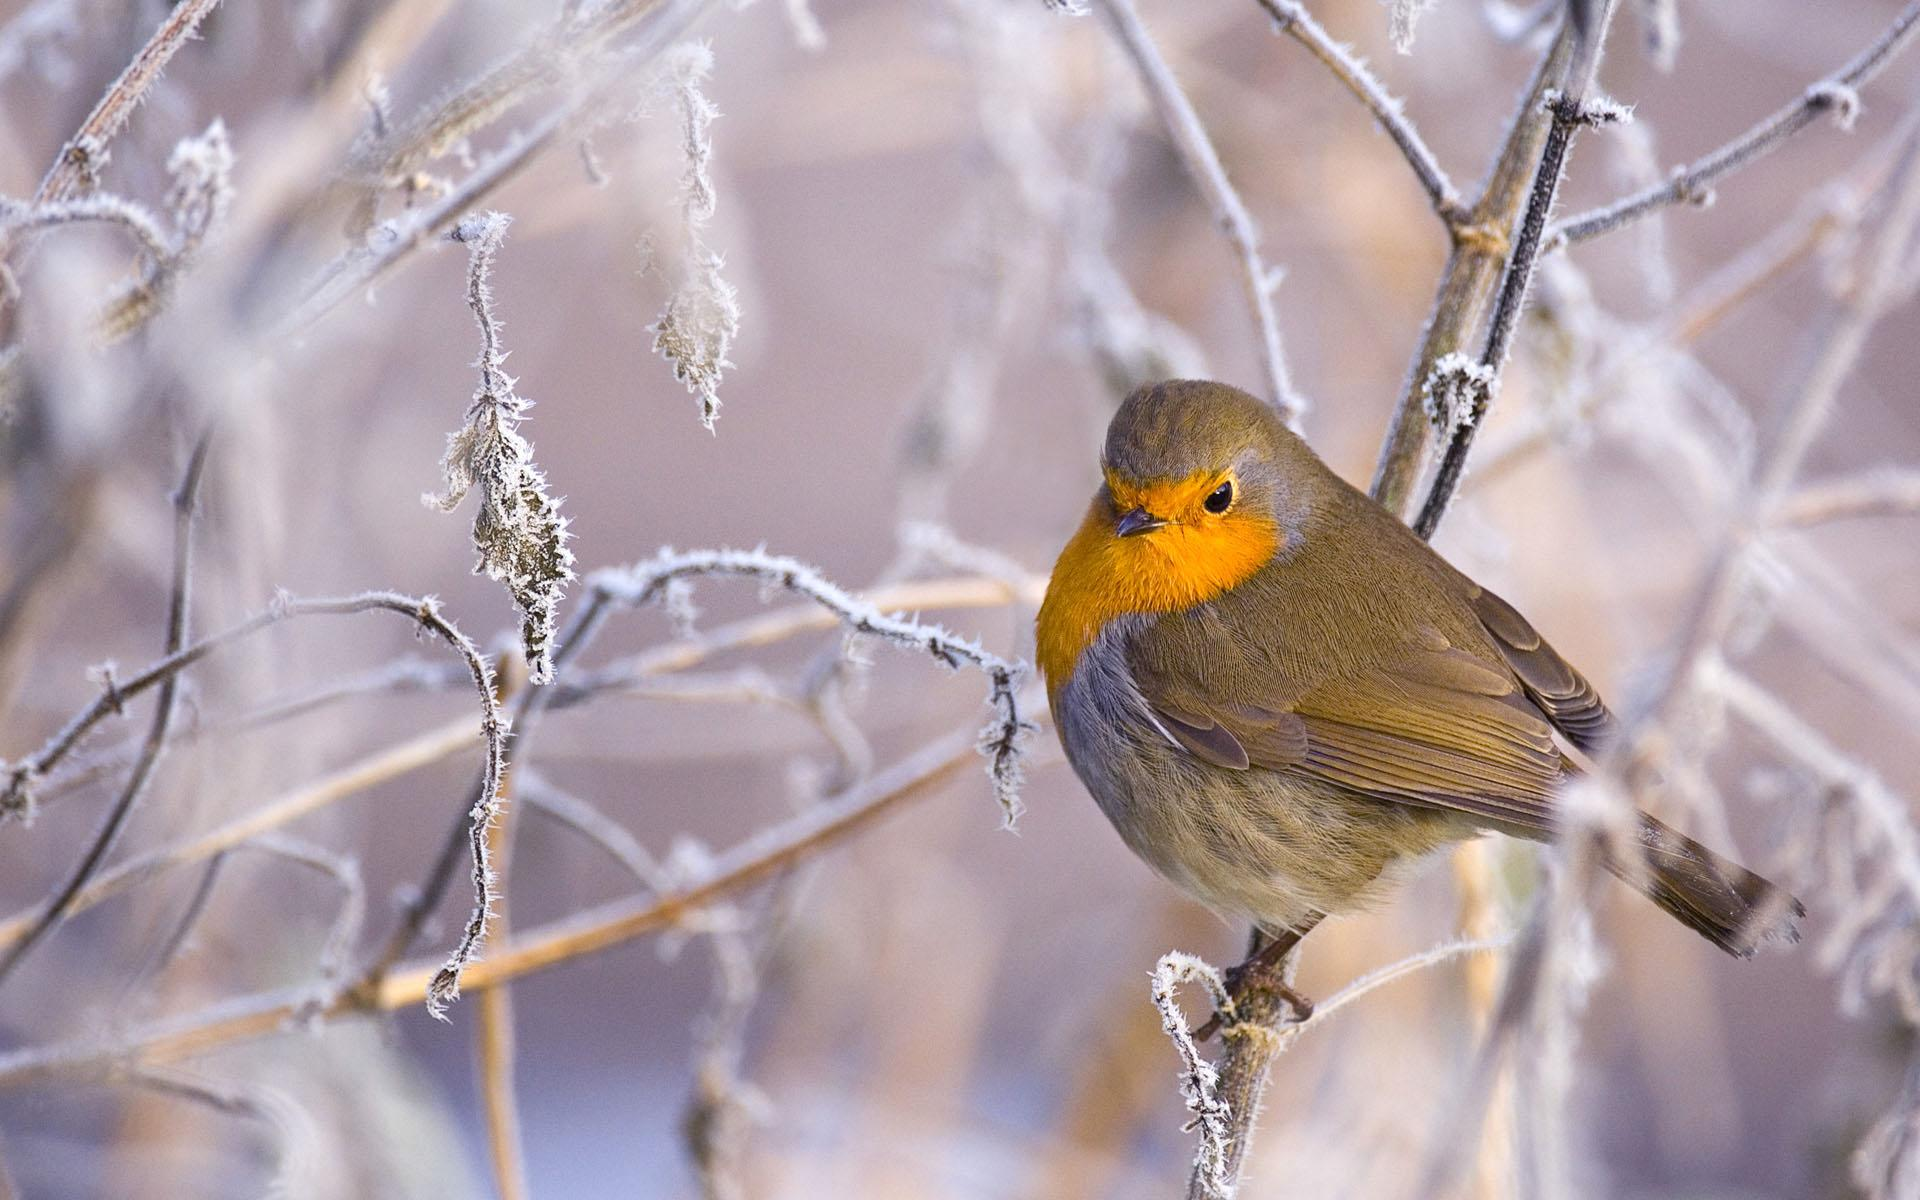 http://wallpaperstock.net/winter-bird-wallpapers_32301_1920x1200.jpg